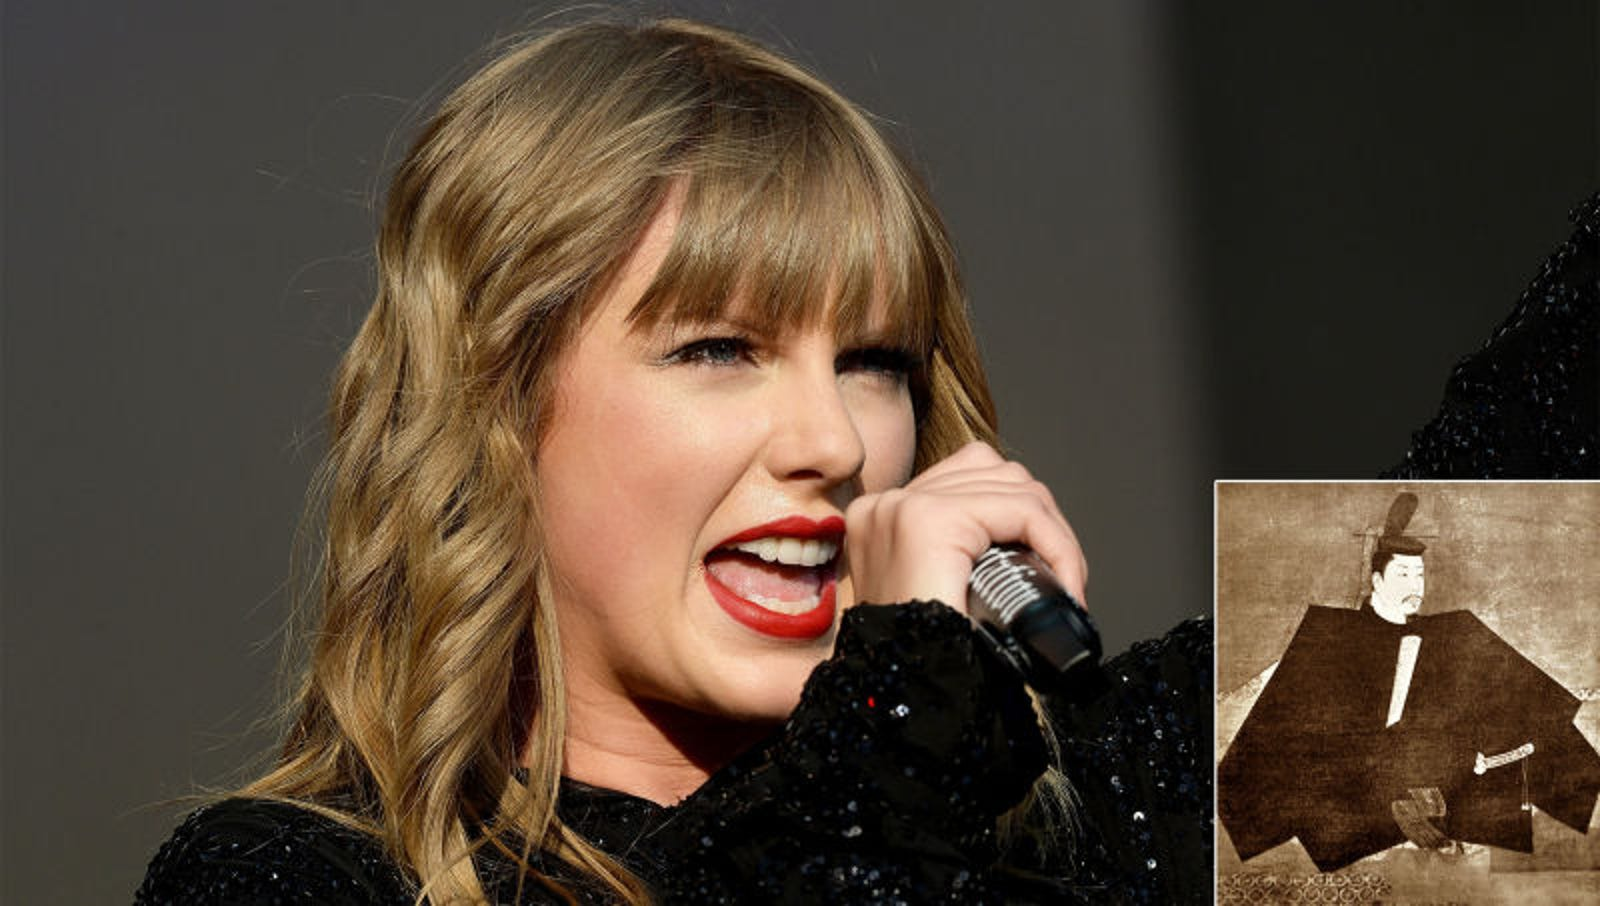 Taylor Swift Breaks Political Silence To Throw Support Behind Restoring Shōgun To Throne Of Japan